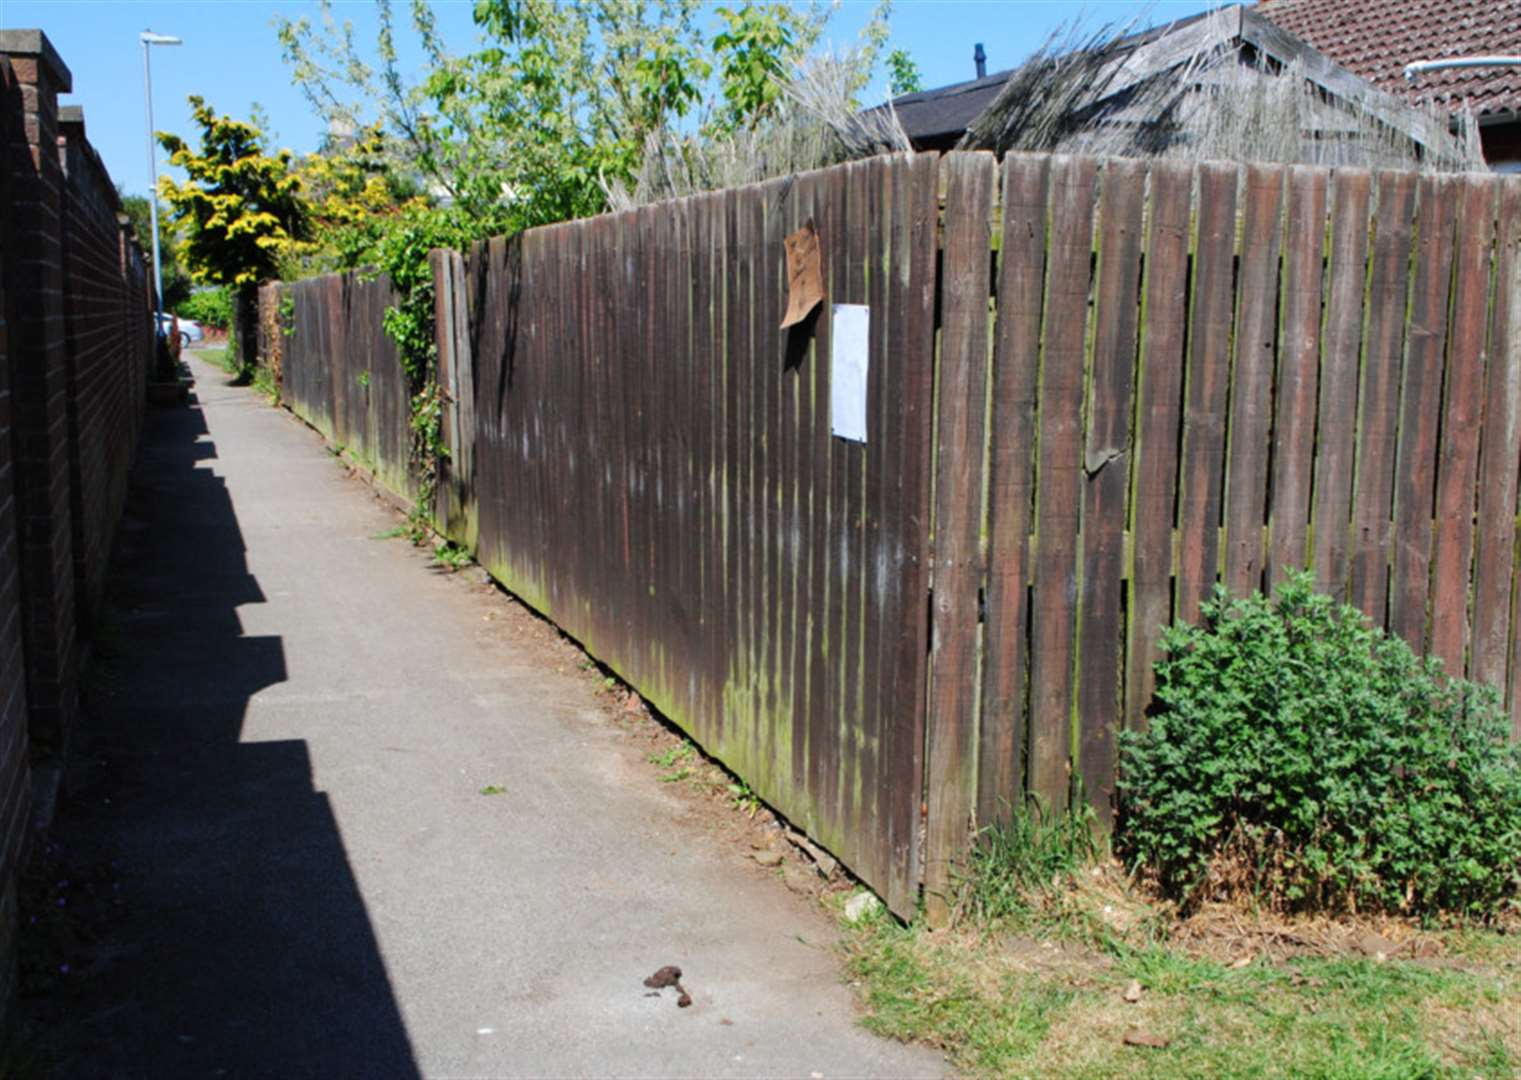 Grantham alley turned into a no-go area by dog mess